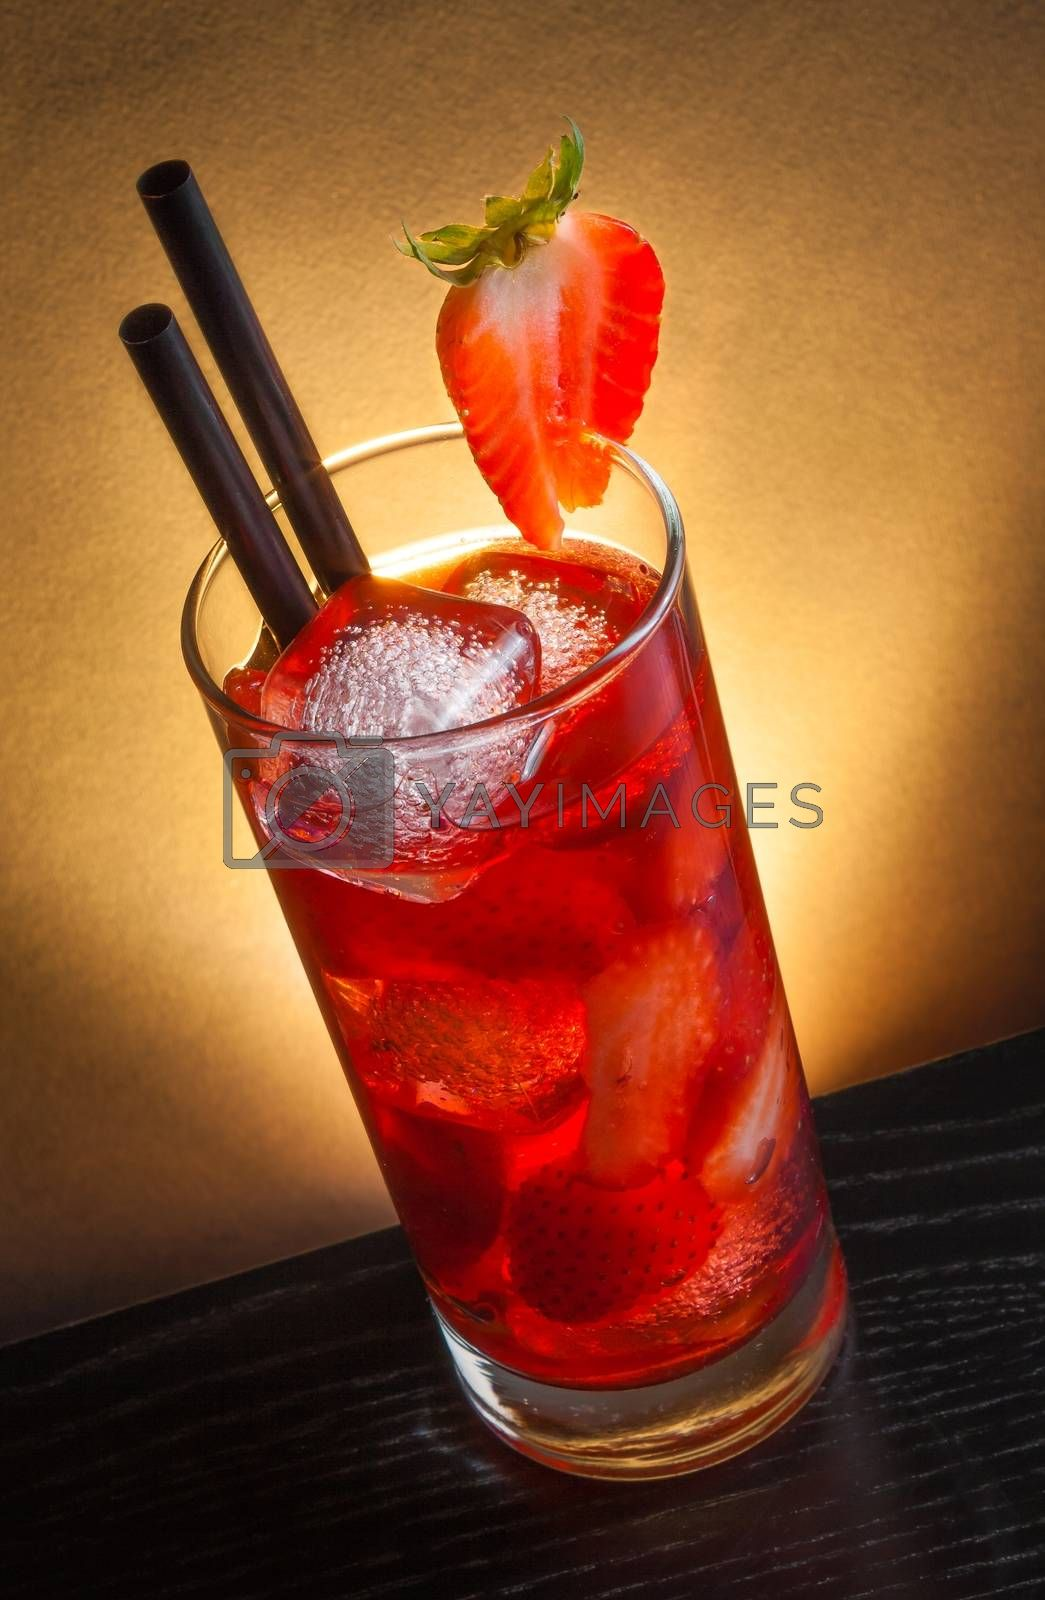 Strawberry cocktail with ice on wood table  by donfiore